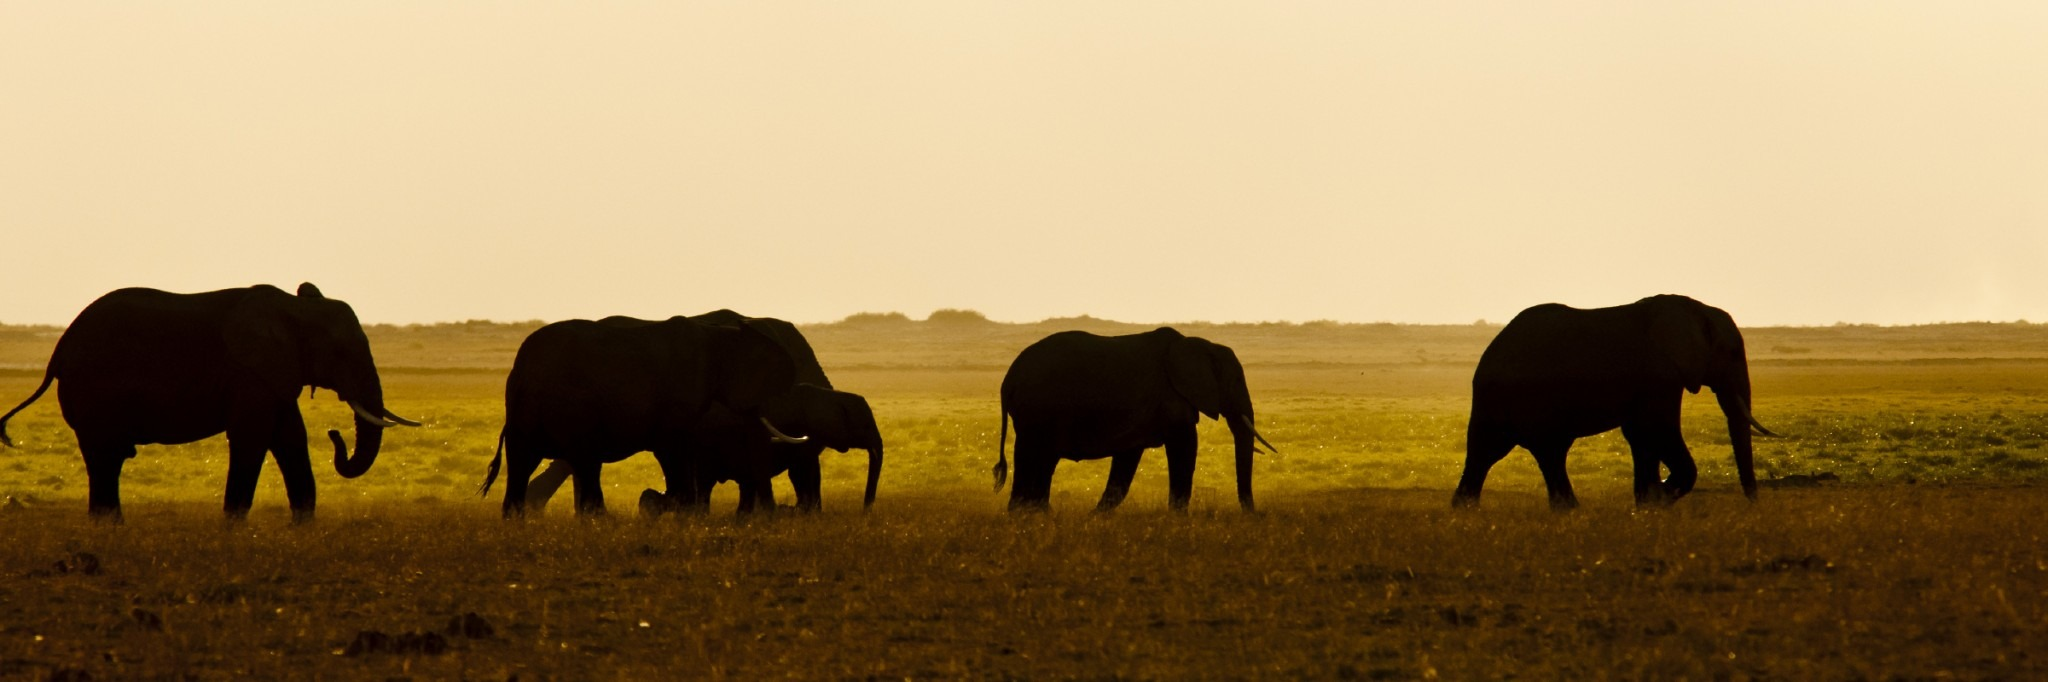 The Unintended Consequences of Banning Ivory Sales